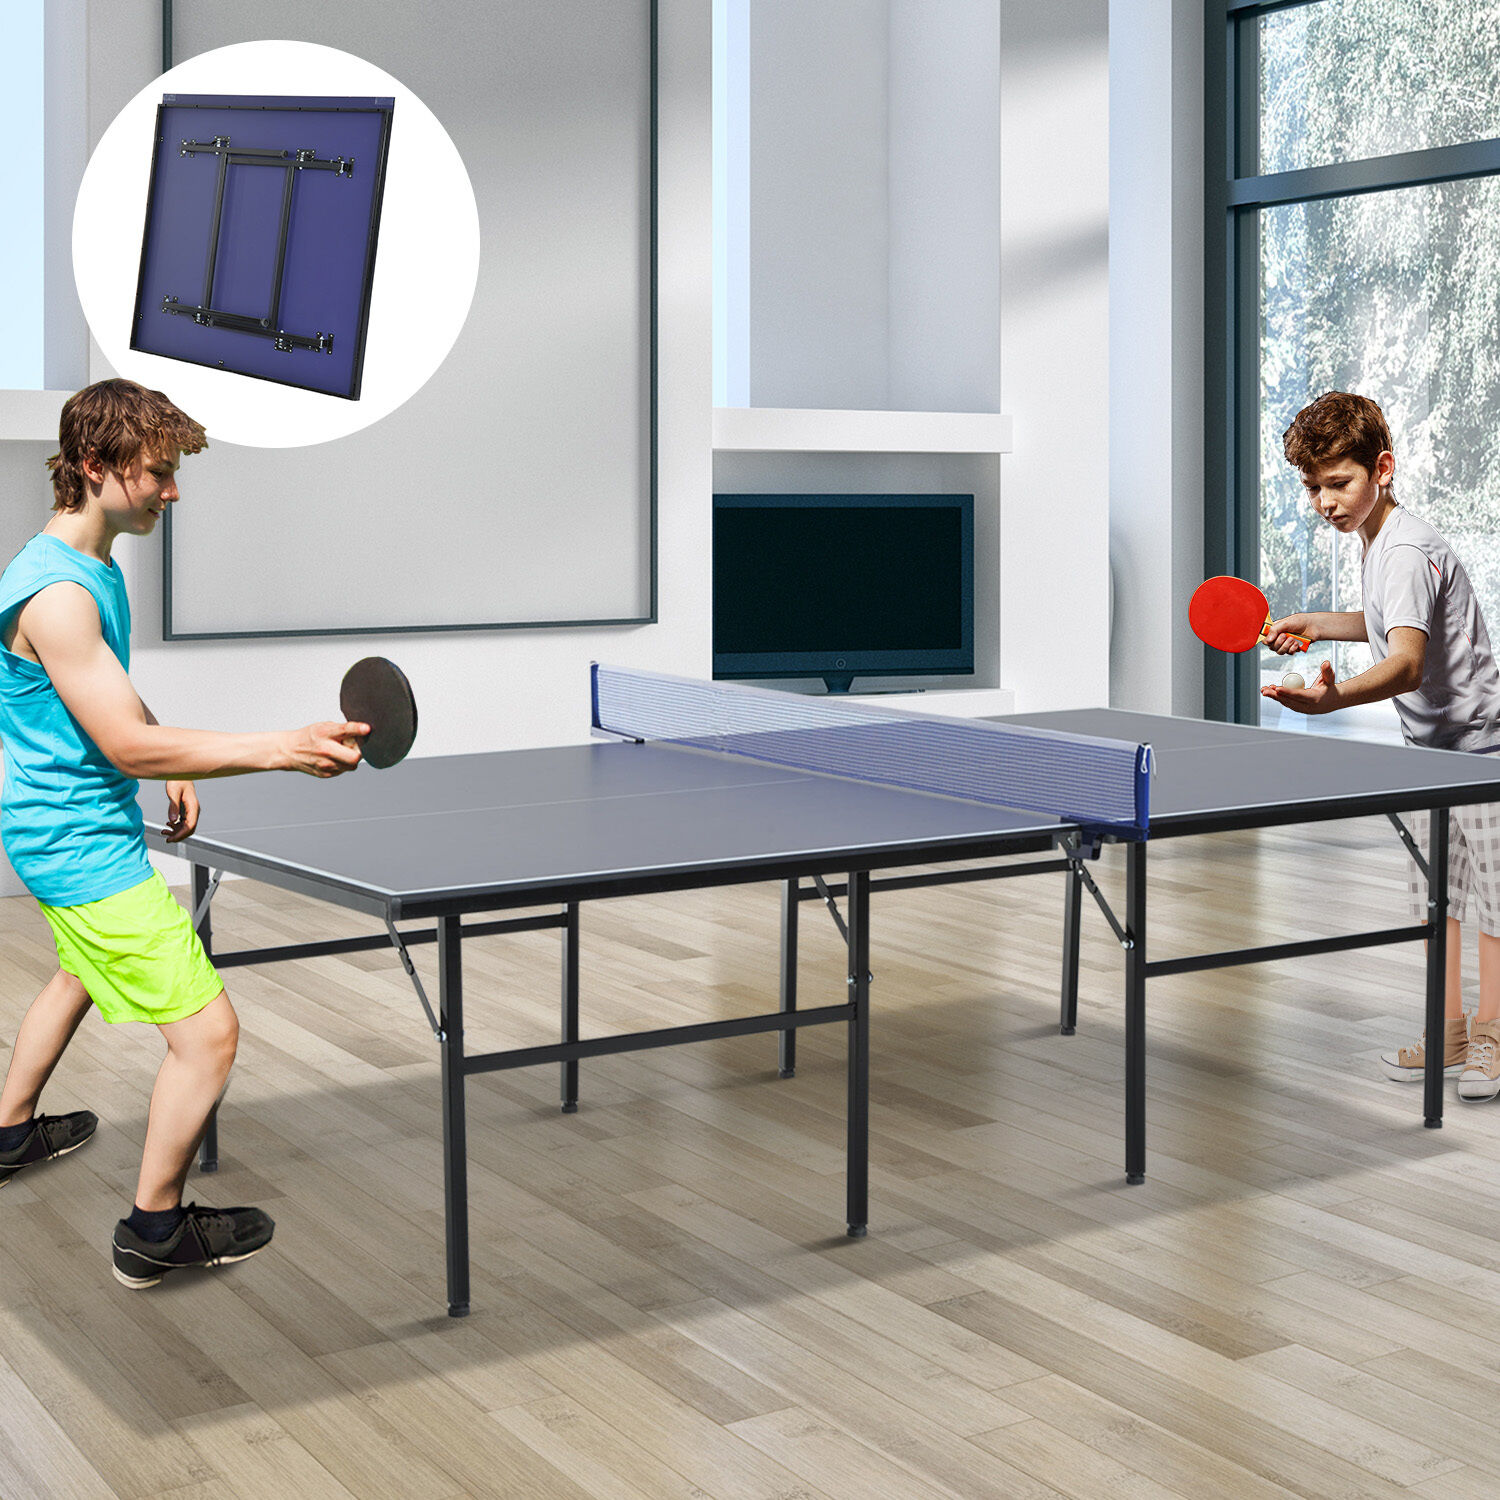 Professional tennis table ping pong set indoor outdoor for Table tennis 99